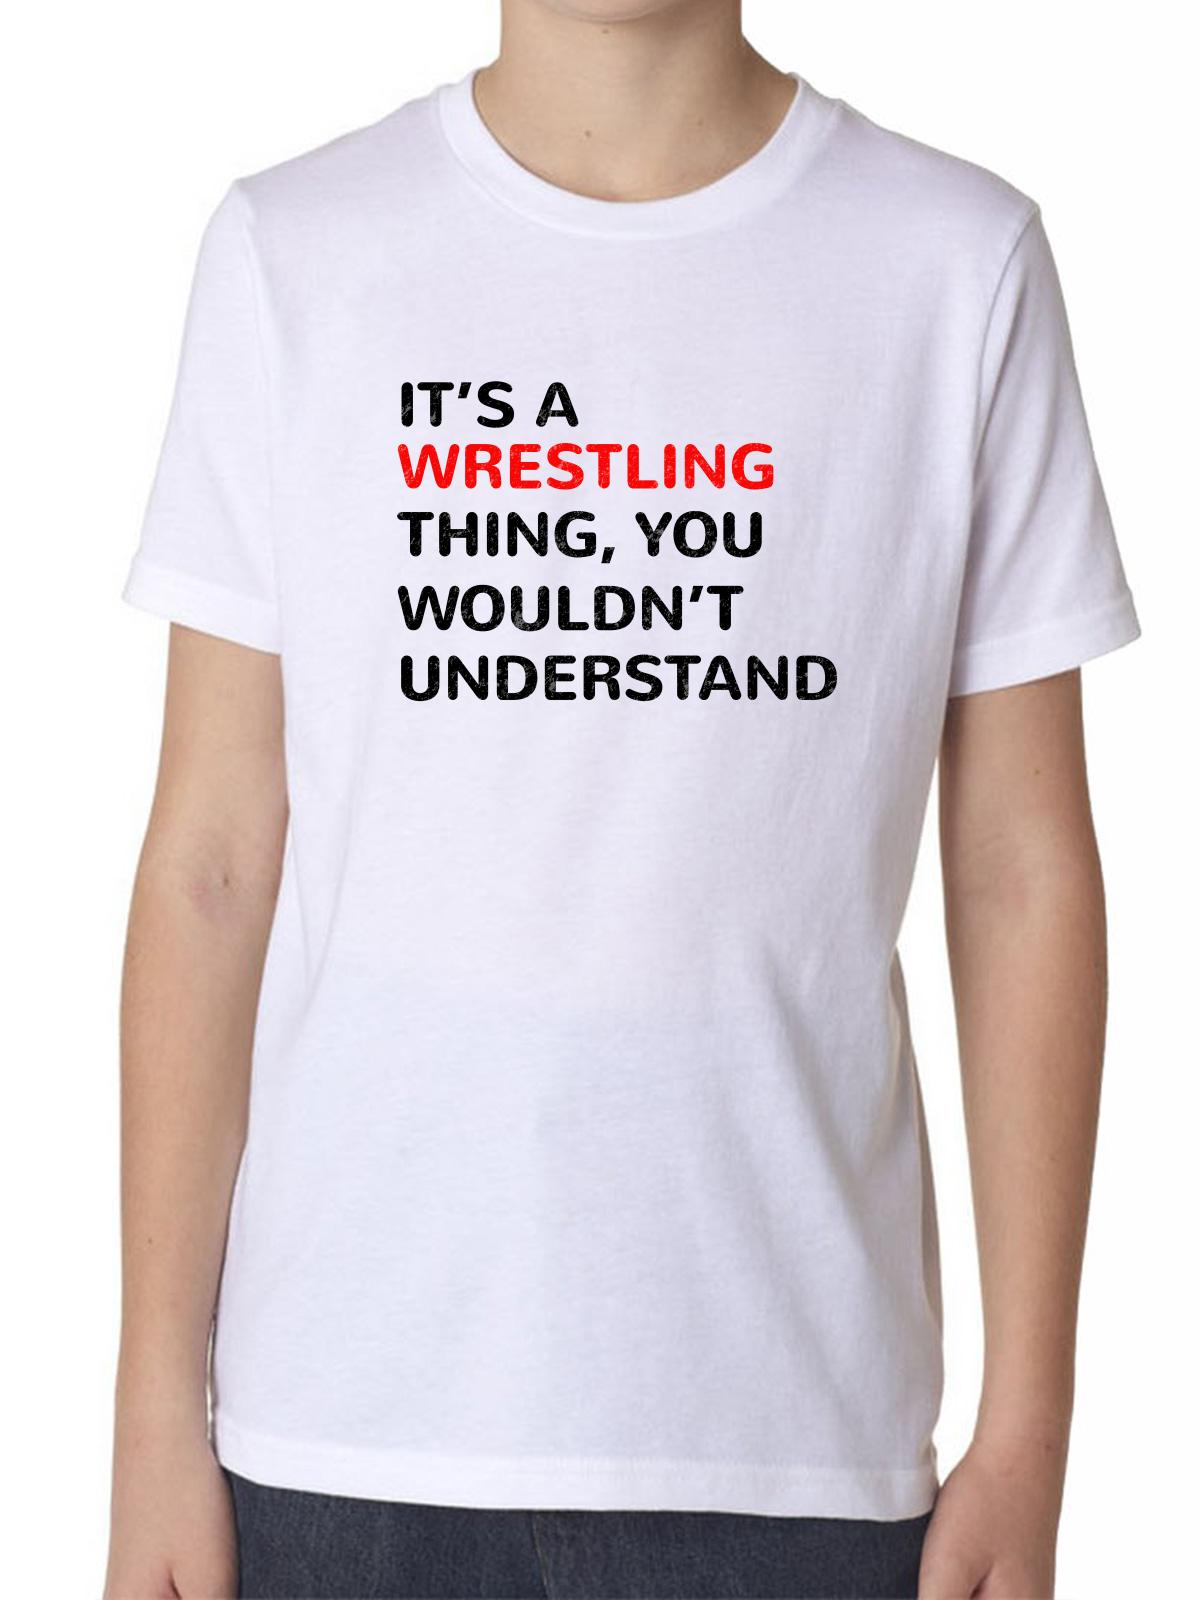 It's A Wrestling Thing You Wouldn't Understand Boy's Cotton Youth T-Shirt by Hollywood Thread